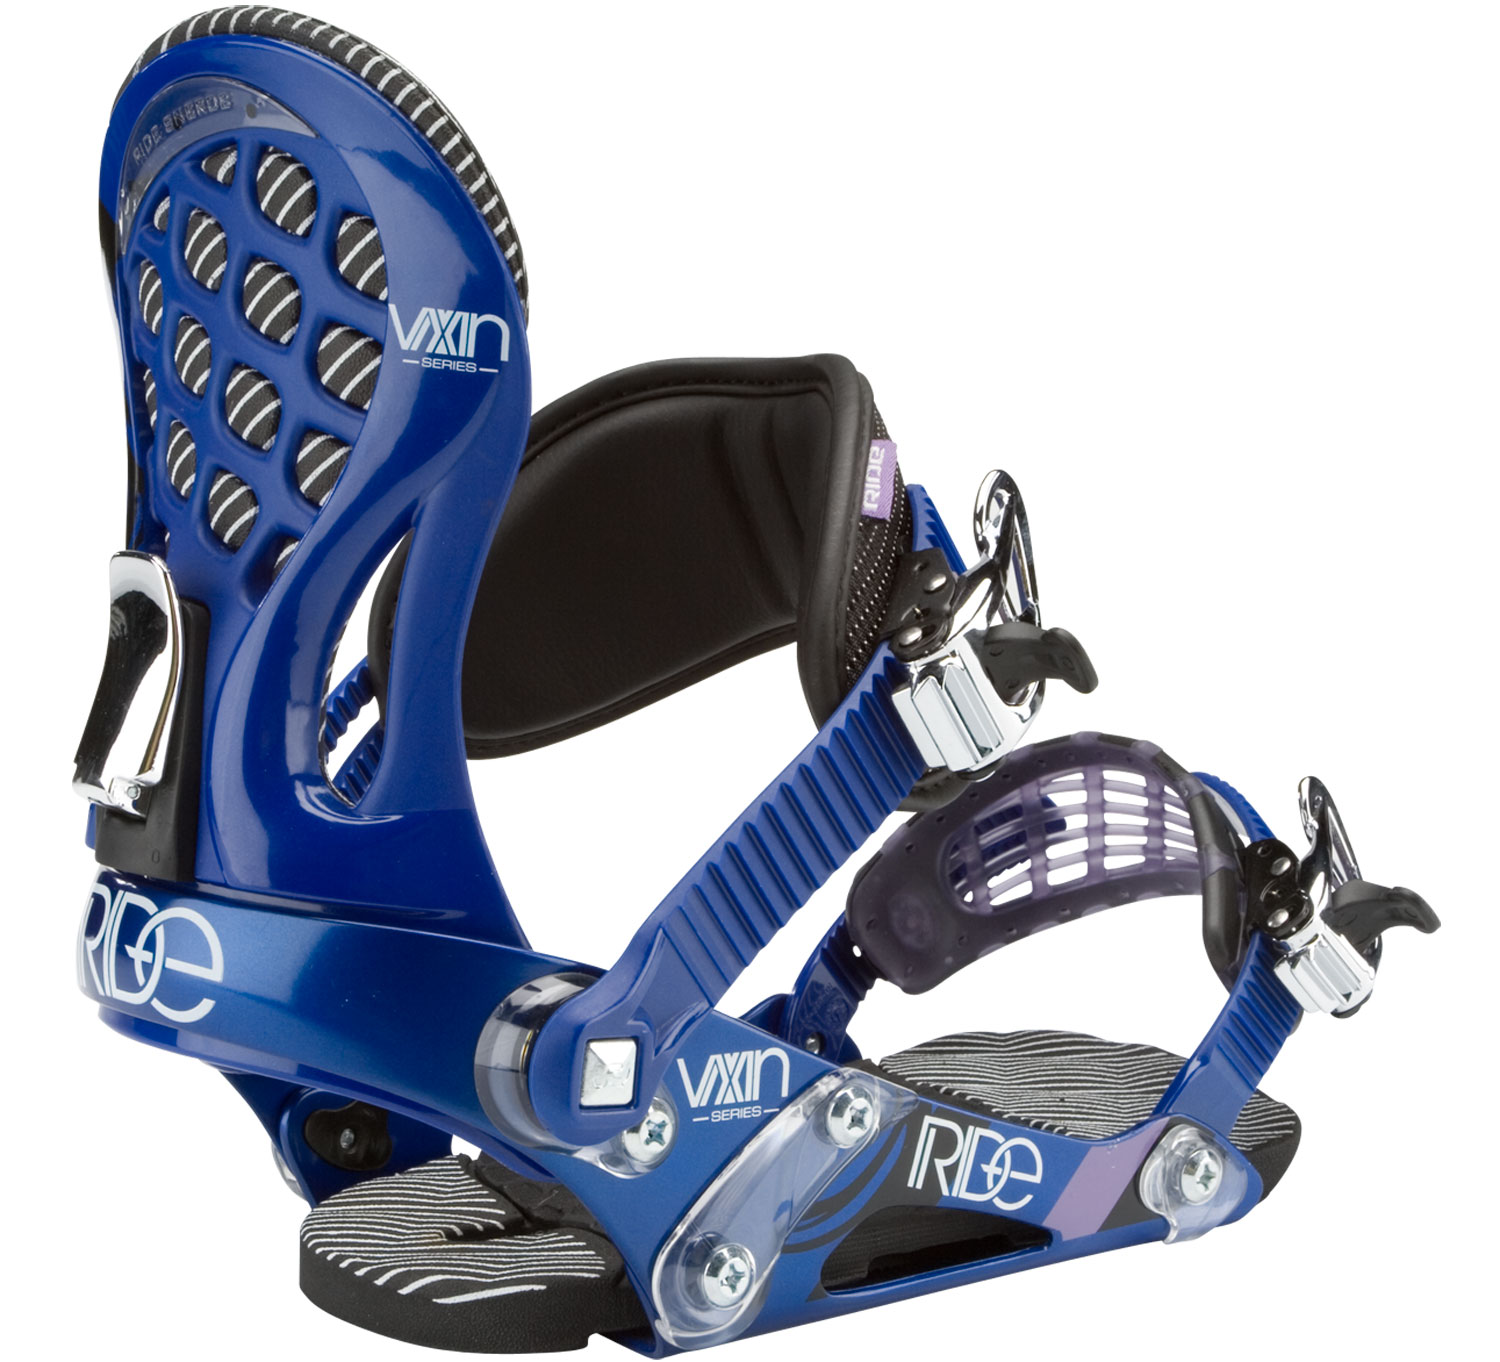 Snowboard Built for hitting everything the mountain has to offer, the Ride VXN Snowboard Binding offers performance-boosting, all-Ride support. Featuring the Wedgie 1.5 footbed with a subtle angle to provide the perfect mix of comfort and support, and the ThinGrip toe strap for snug boot grip and response. Packed with features, you won''t lack comfort or style with this versatile performance binder.Key Features of the Ride VXN Snowboard Bindings:  Foundation Chassis System  Luxlite Highback  Balance Ankle Strap  New! Thingrip Toe Strap  New! Ultralite Quick-Draw Ratchets  Wedgie 1.5 Footbed  Forged Aluminum Response Disc  Bindings Flex-O-Meter: 4 - $95.95